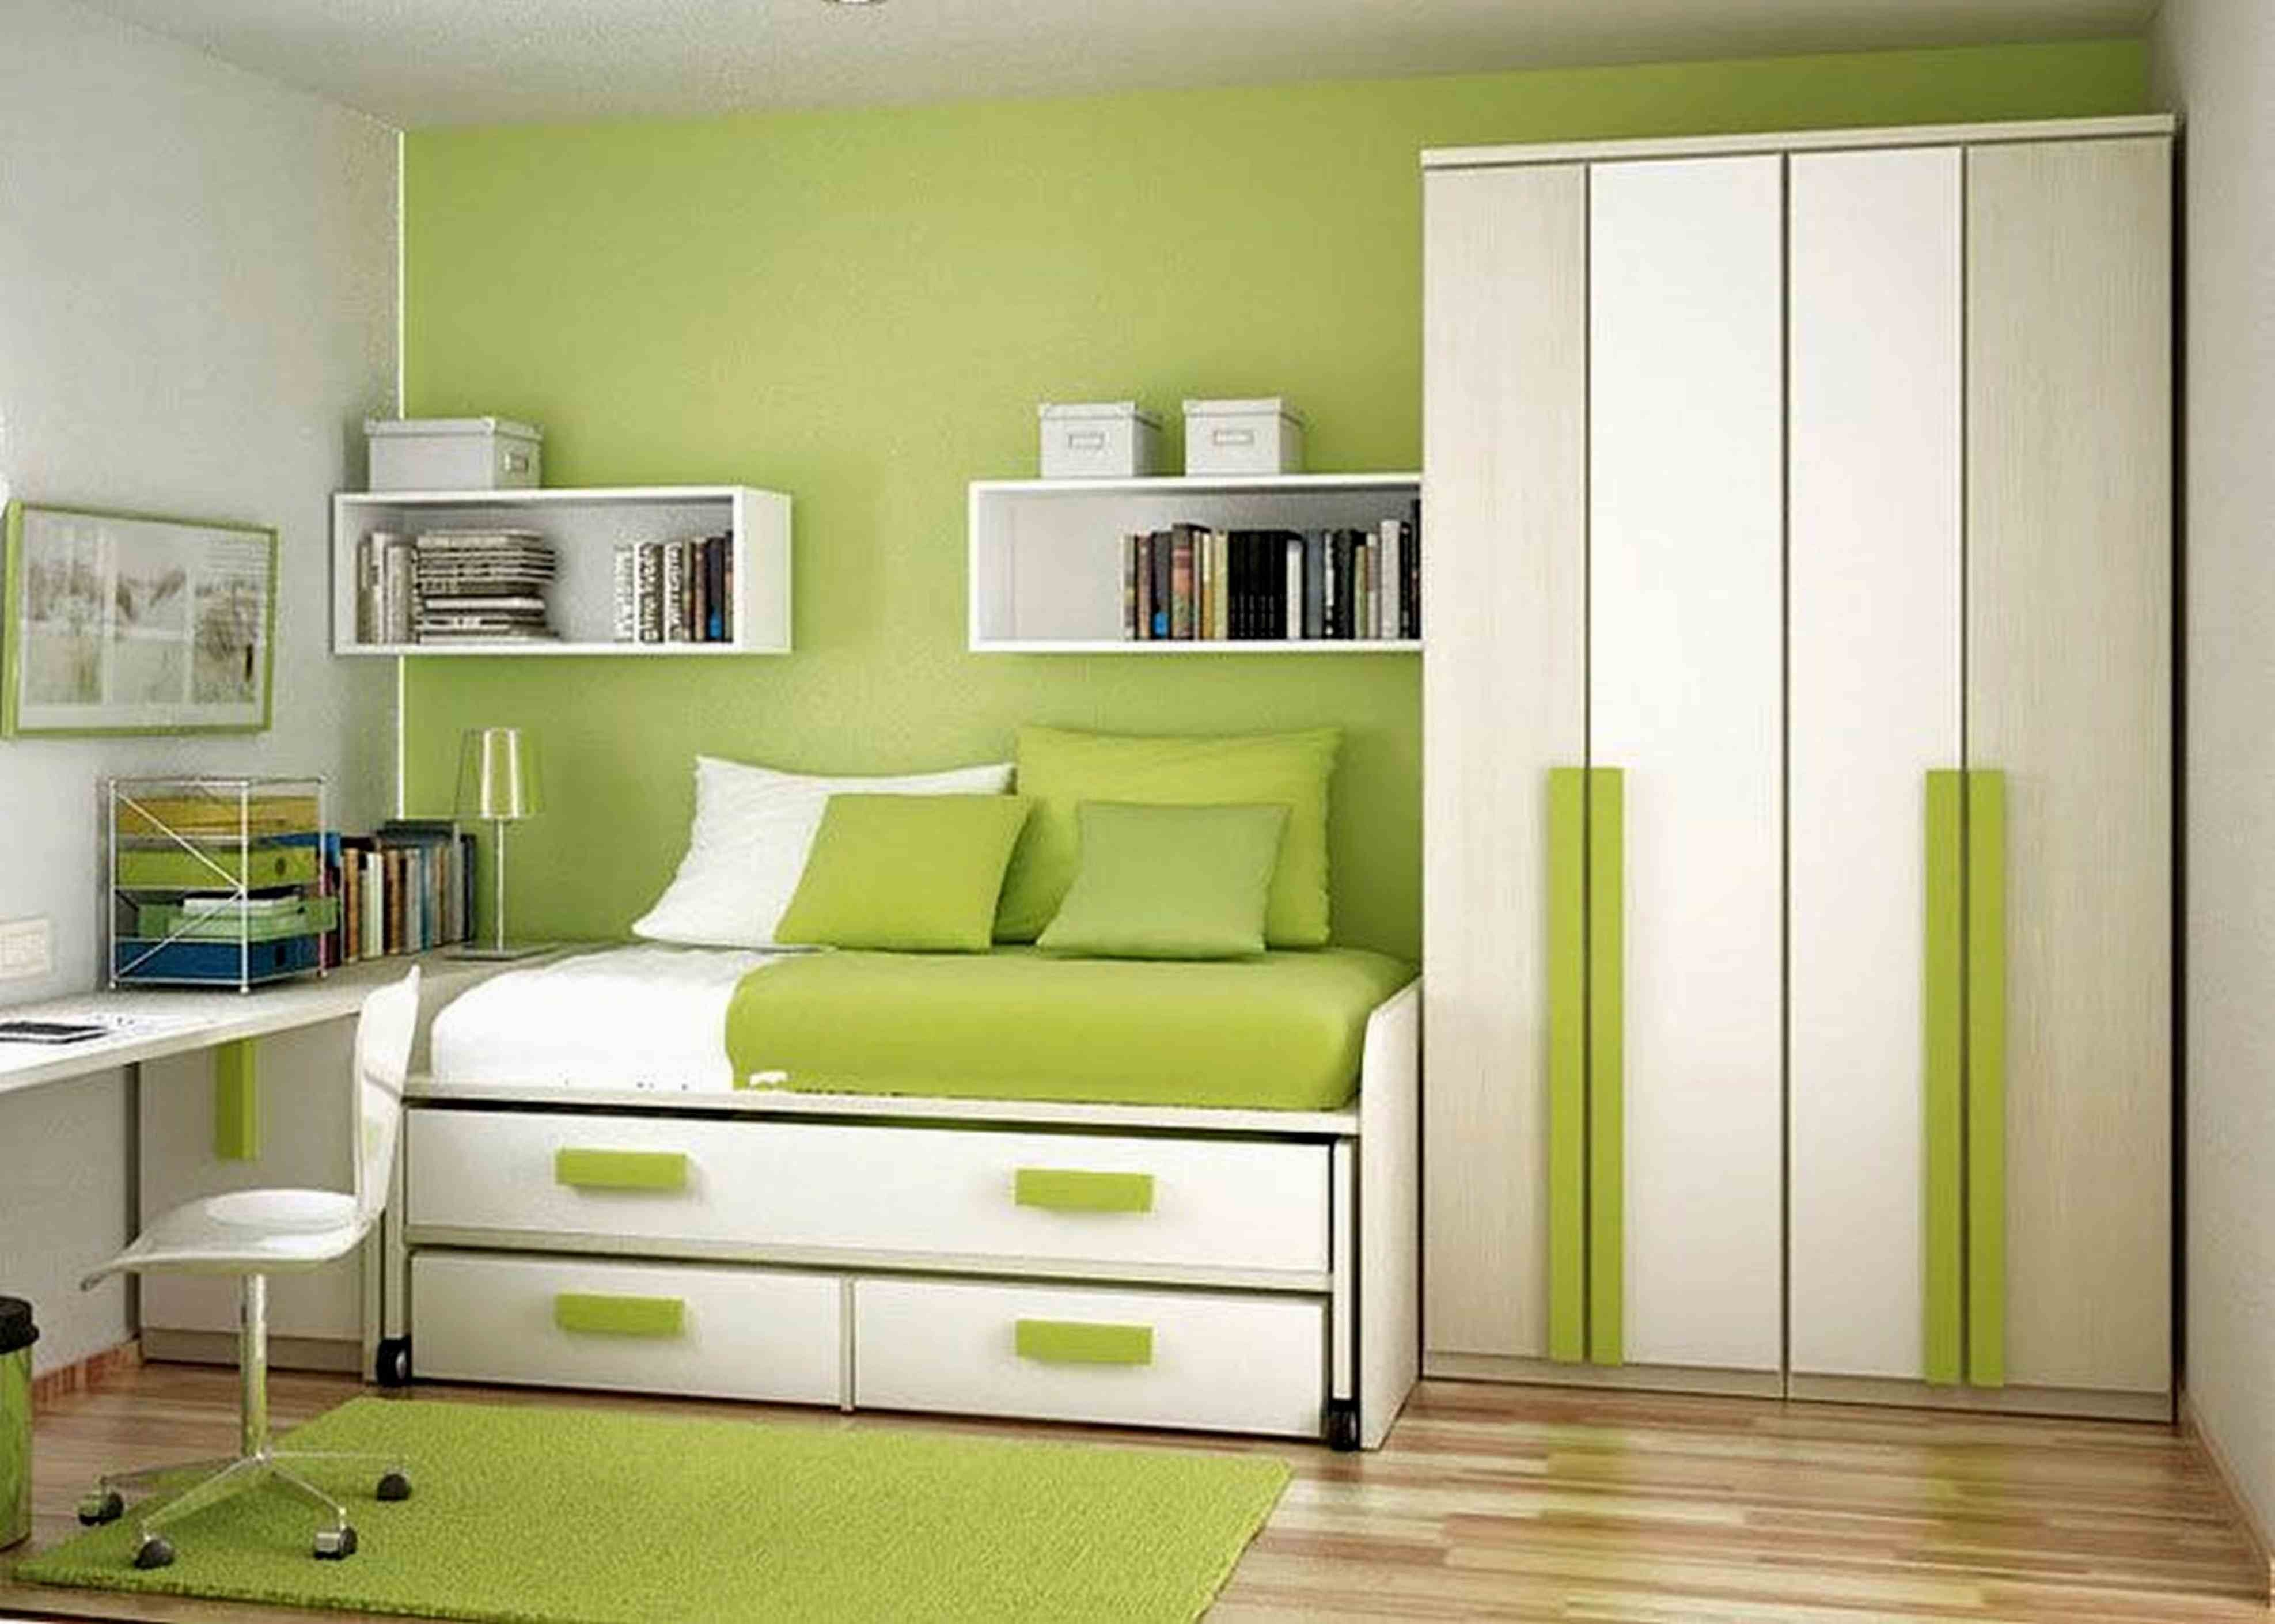 Bedroom Ideas For Small Rooms 10 X 11 Furneture Pinterest Wallpaper Stiker Dinding Lux 5 23pr